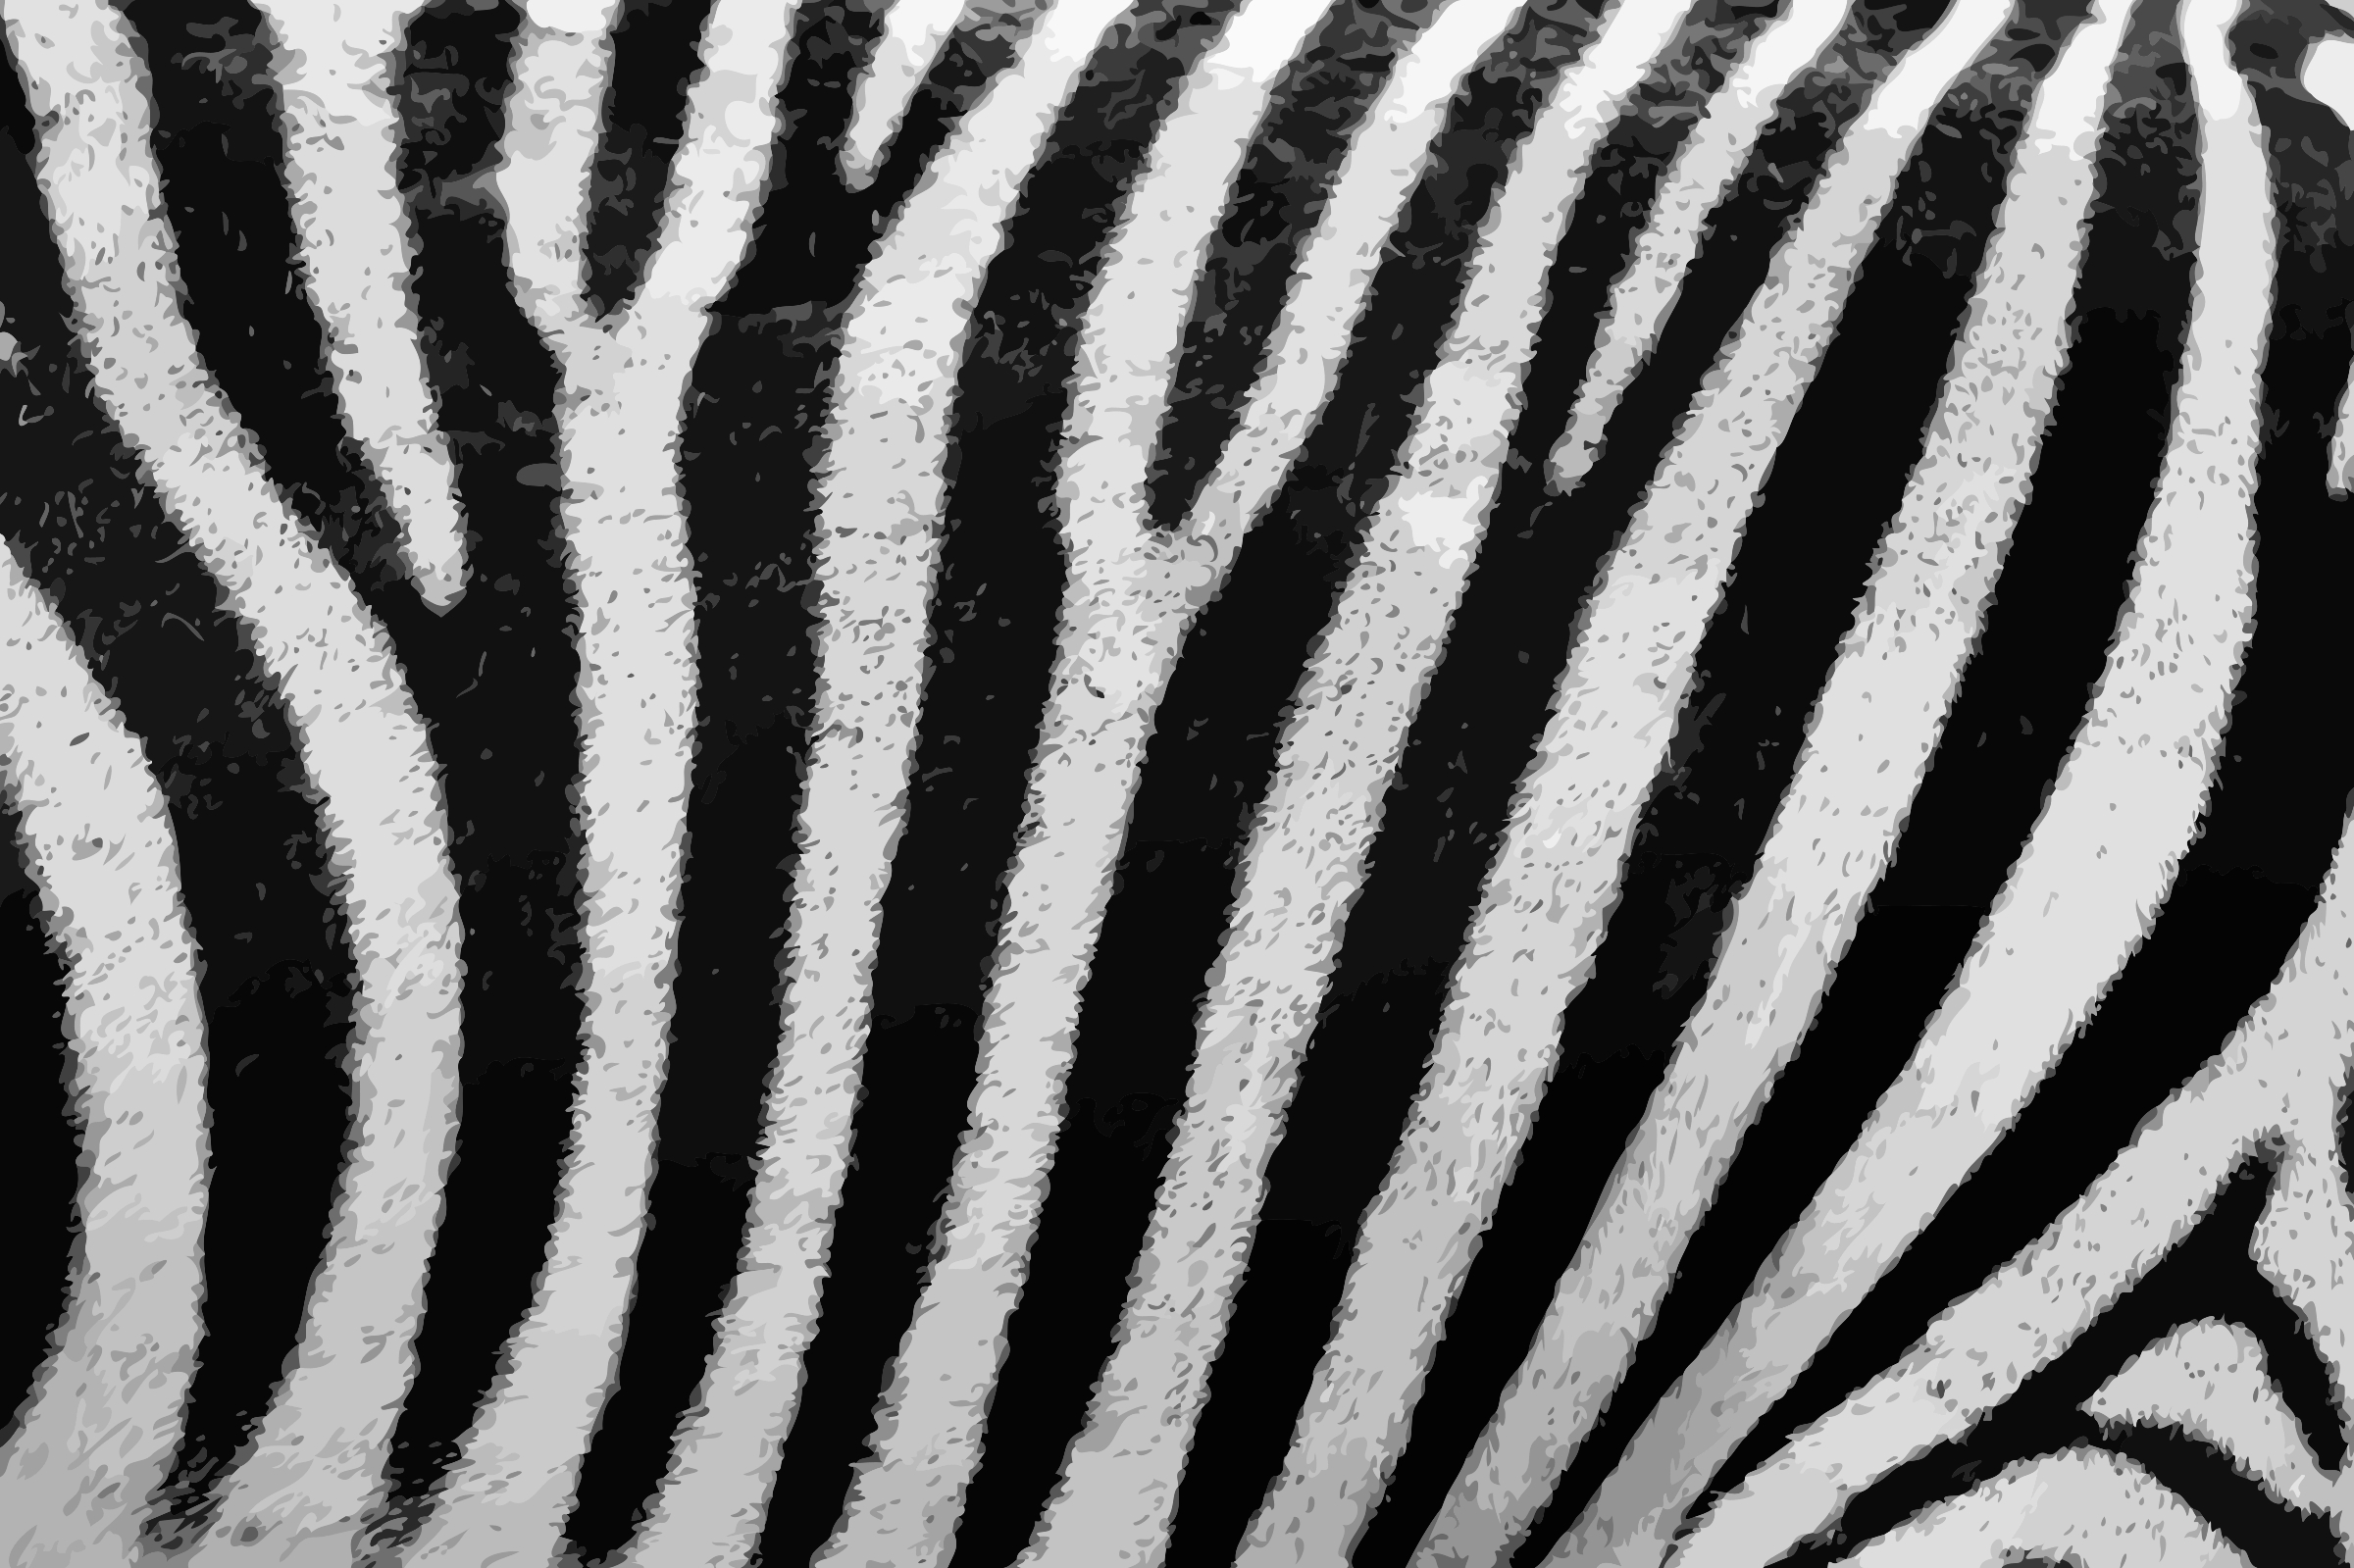 Zebra fur by Firkin